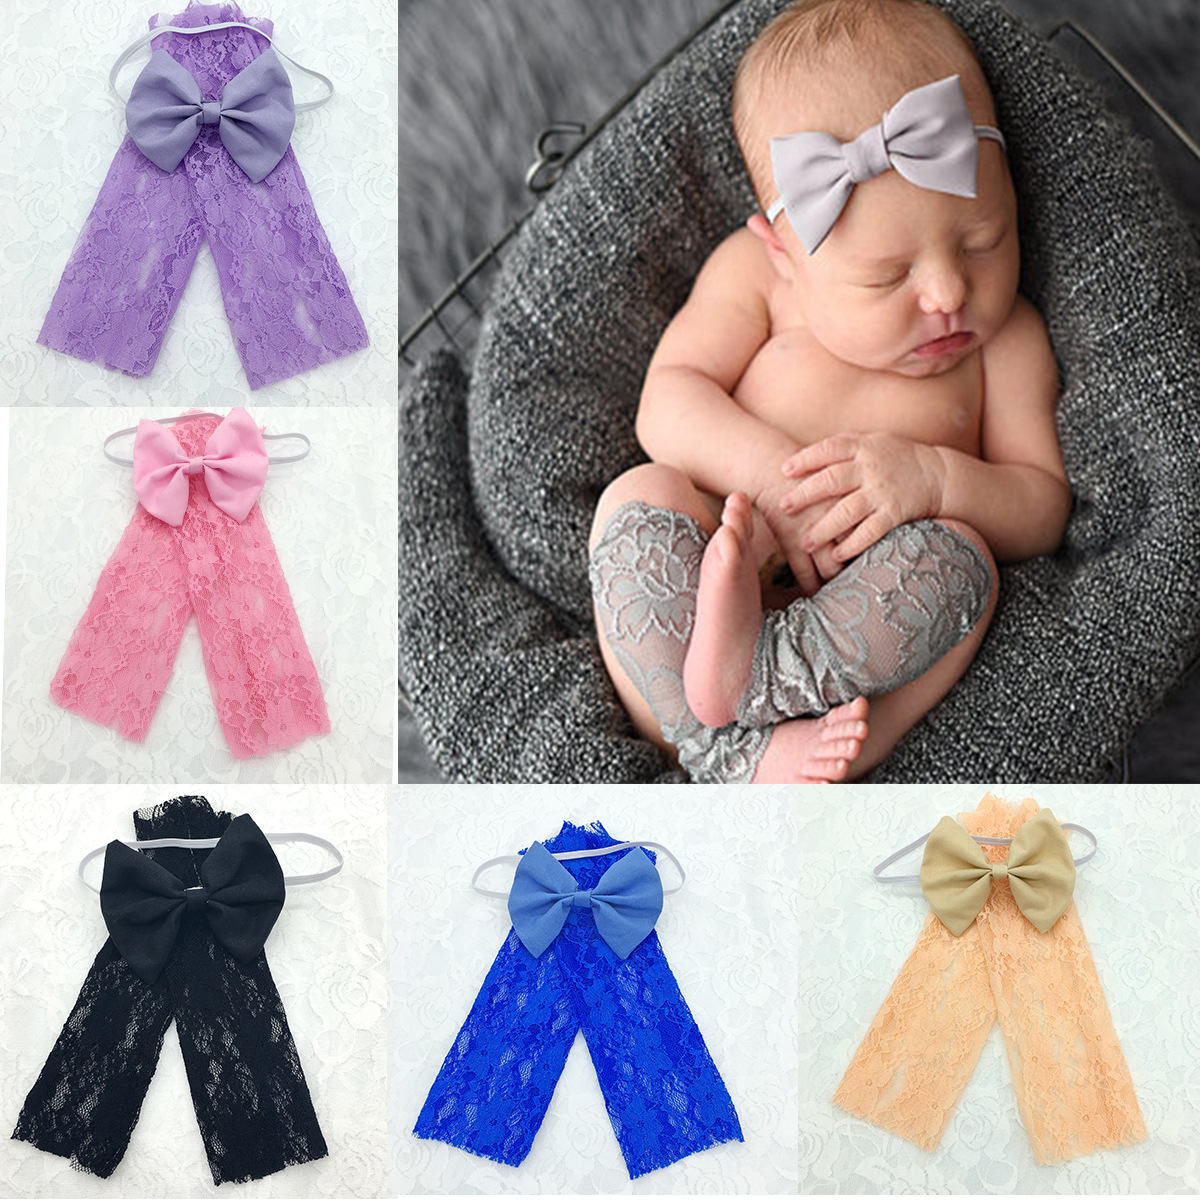 Lace Baby Photography Props Newborn Photography Clothing Sets Wraps Handmade Lace Leg Warmers Baby Photo Props Accessories